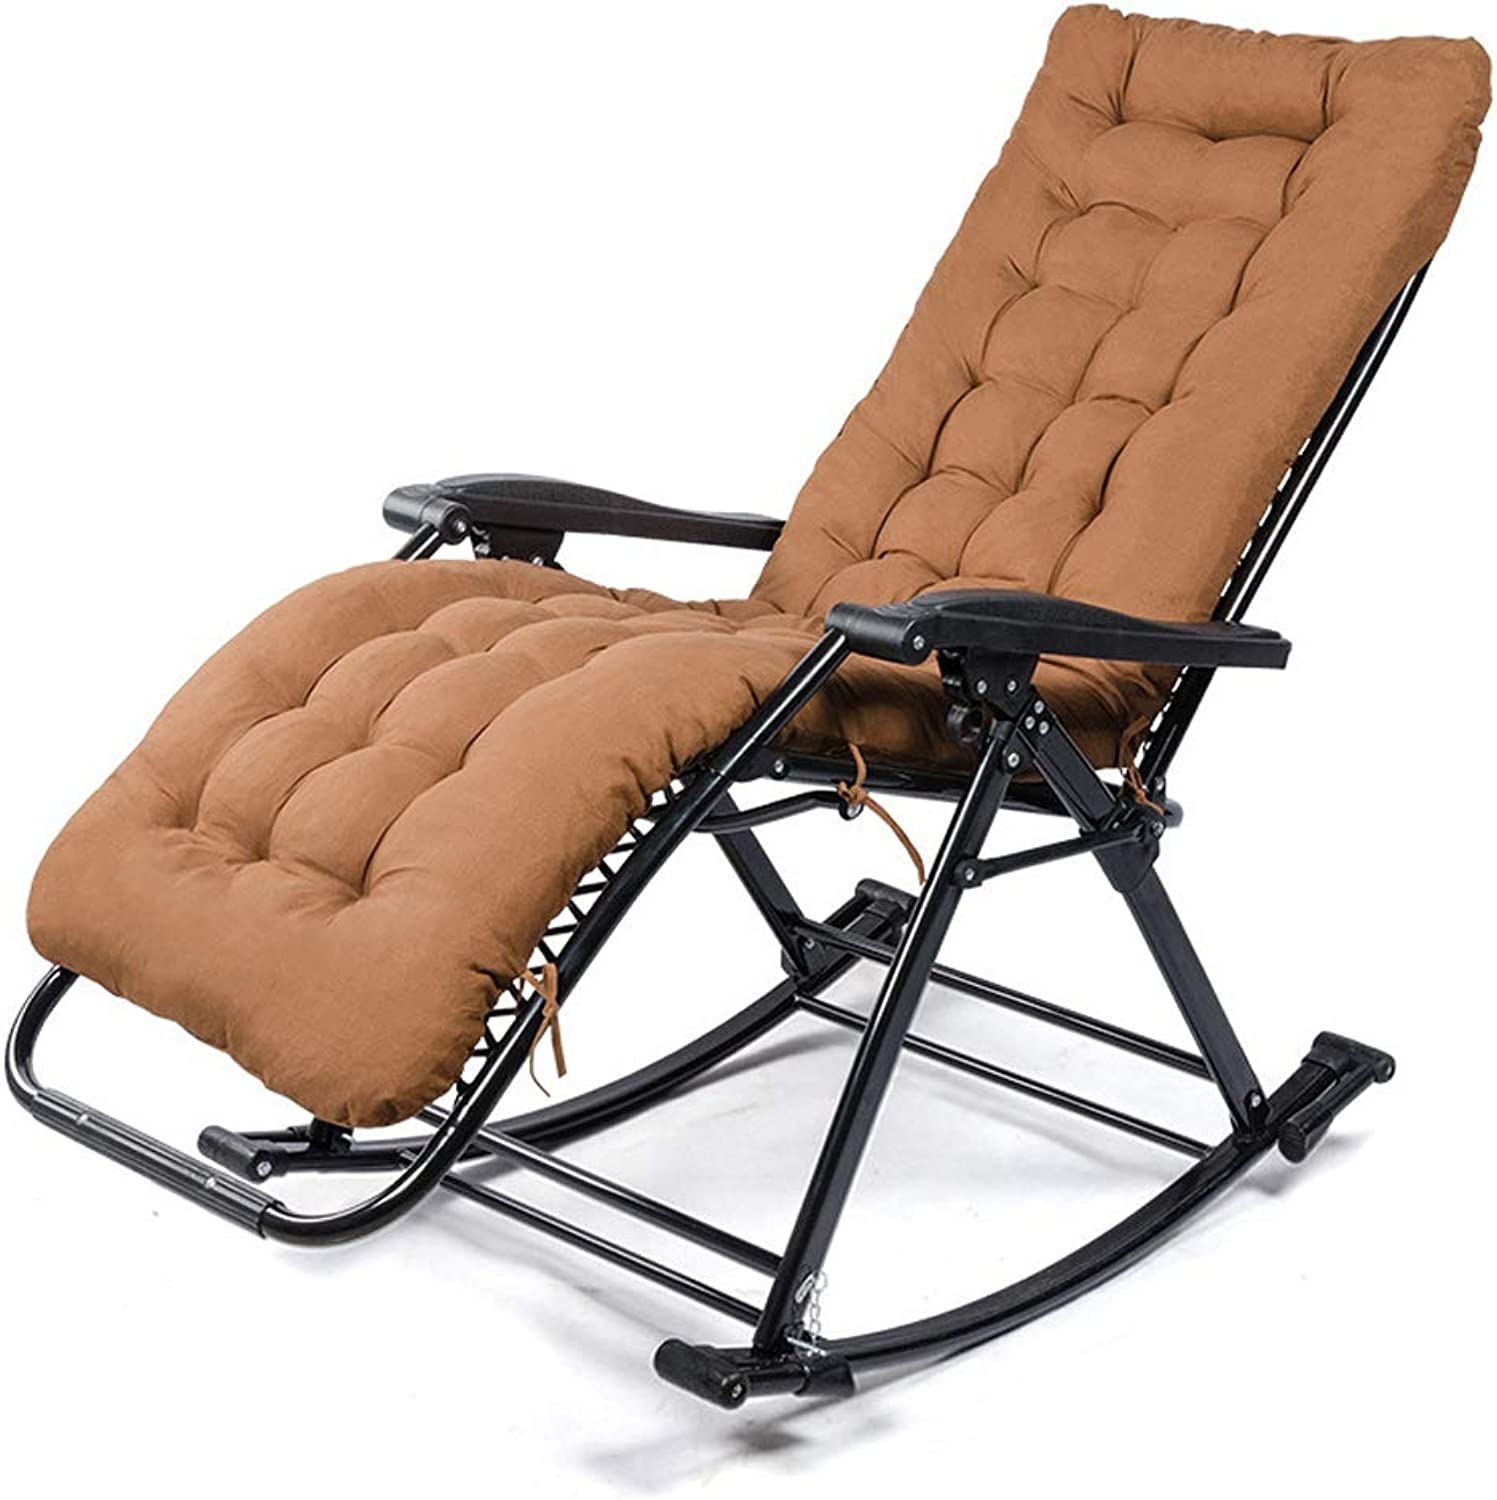 SCM Folding Rocking Elderly Chair with Pad, Lunch Break Recliner Portable Zero Gravity Chairs Outdoor for Camping Fishing (color   Brown)